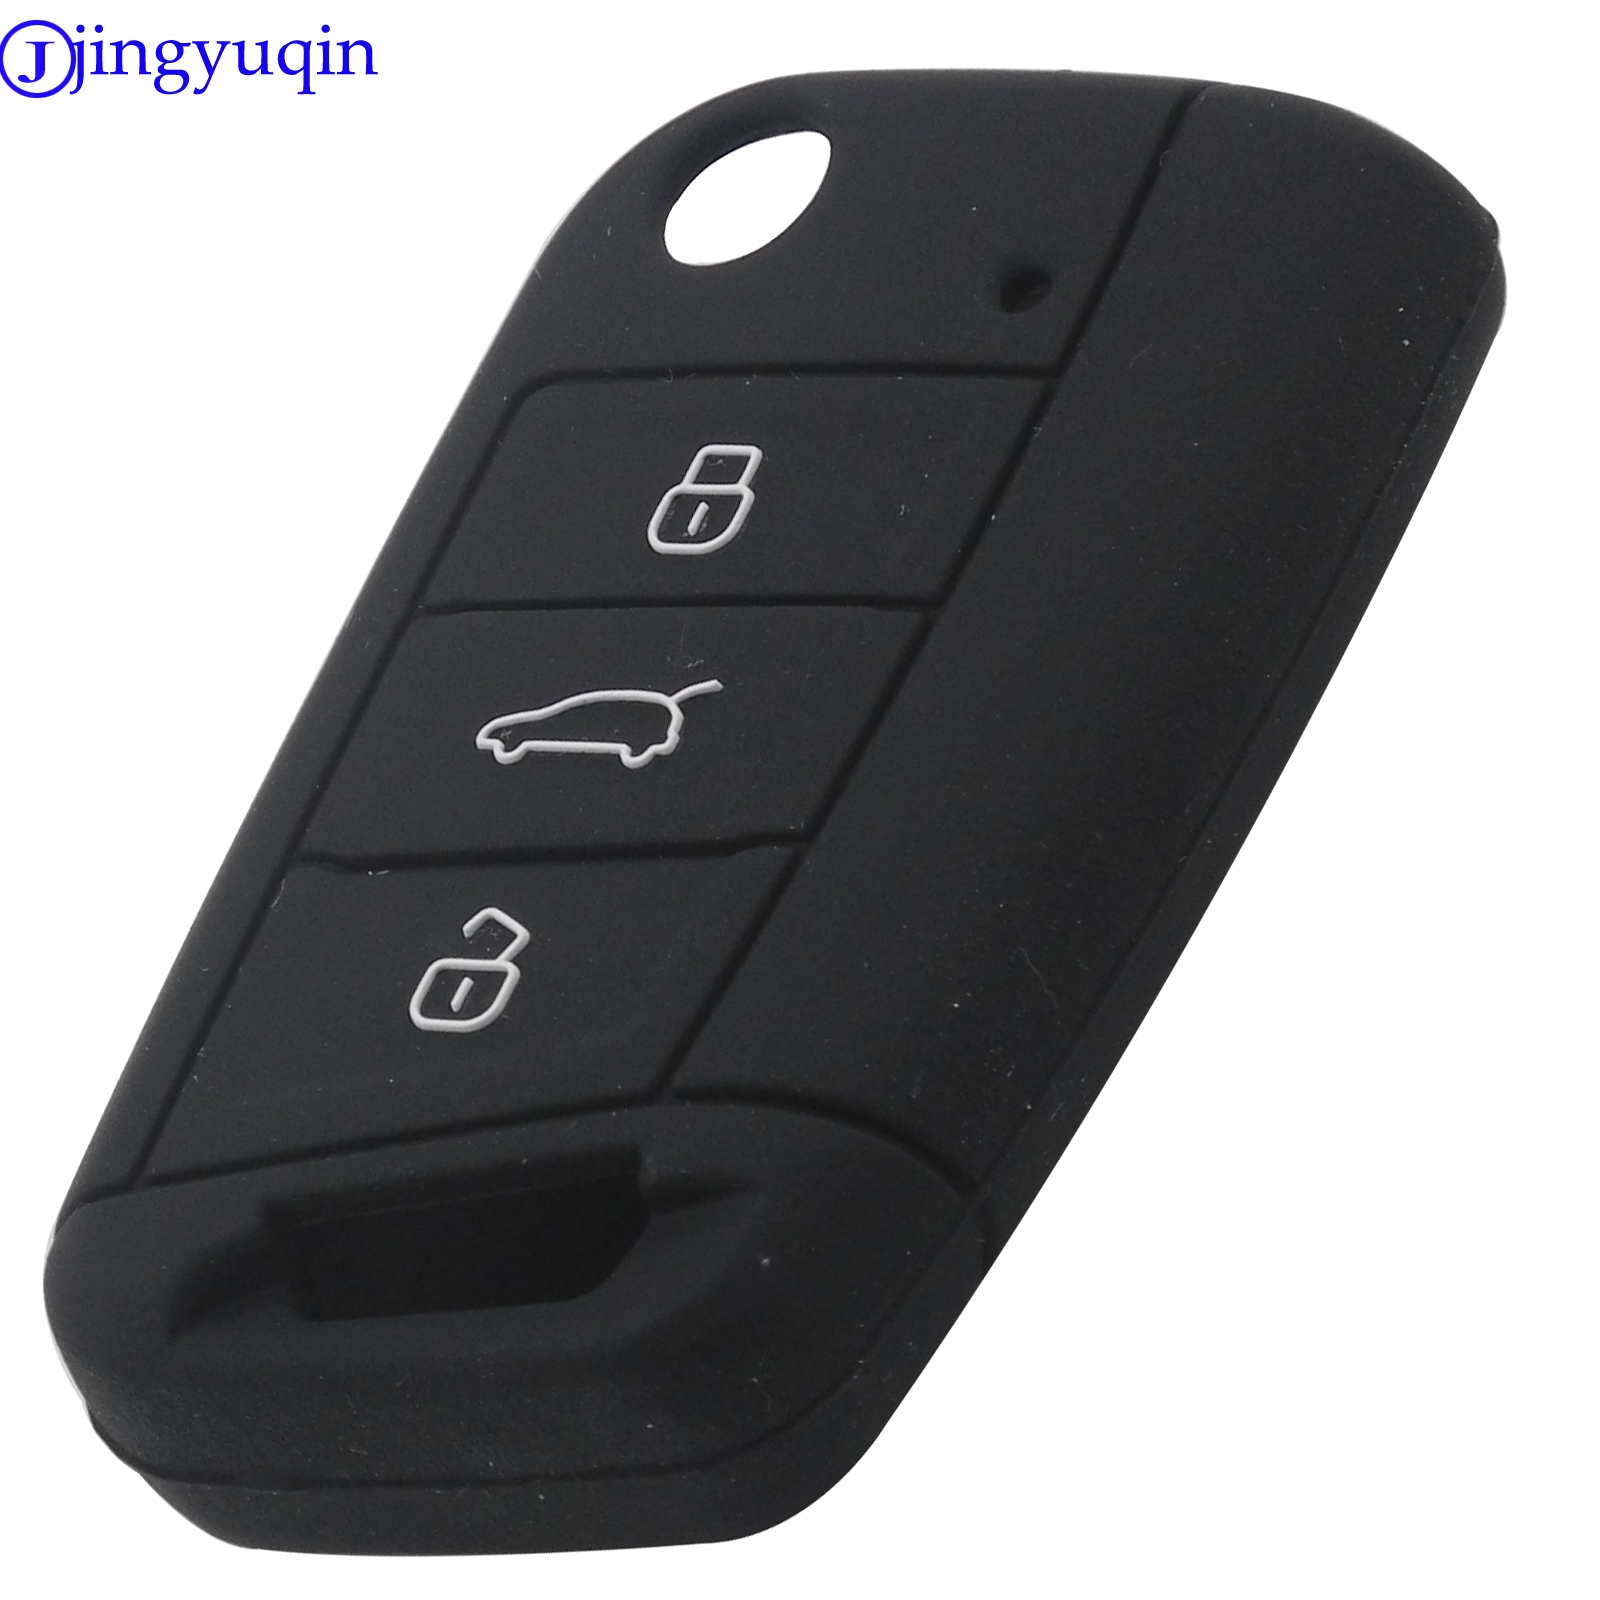 jingyuqin New <font><b>Remote</b></font> Car <font><b>Key</b></font> Silicone Case Cover Protector For Volkswagen VW <font><b>Golf</b></font> <font><b>7</b></font> Skoda Octavia A7 3 Button Flip <font><b>Key</b></font> Fob image